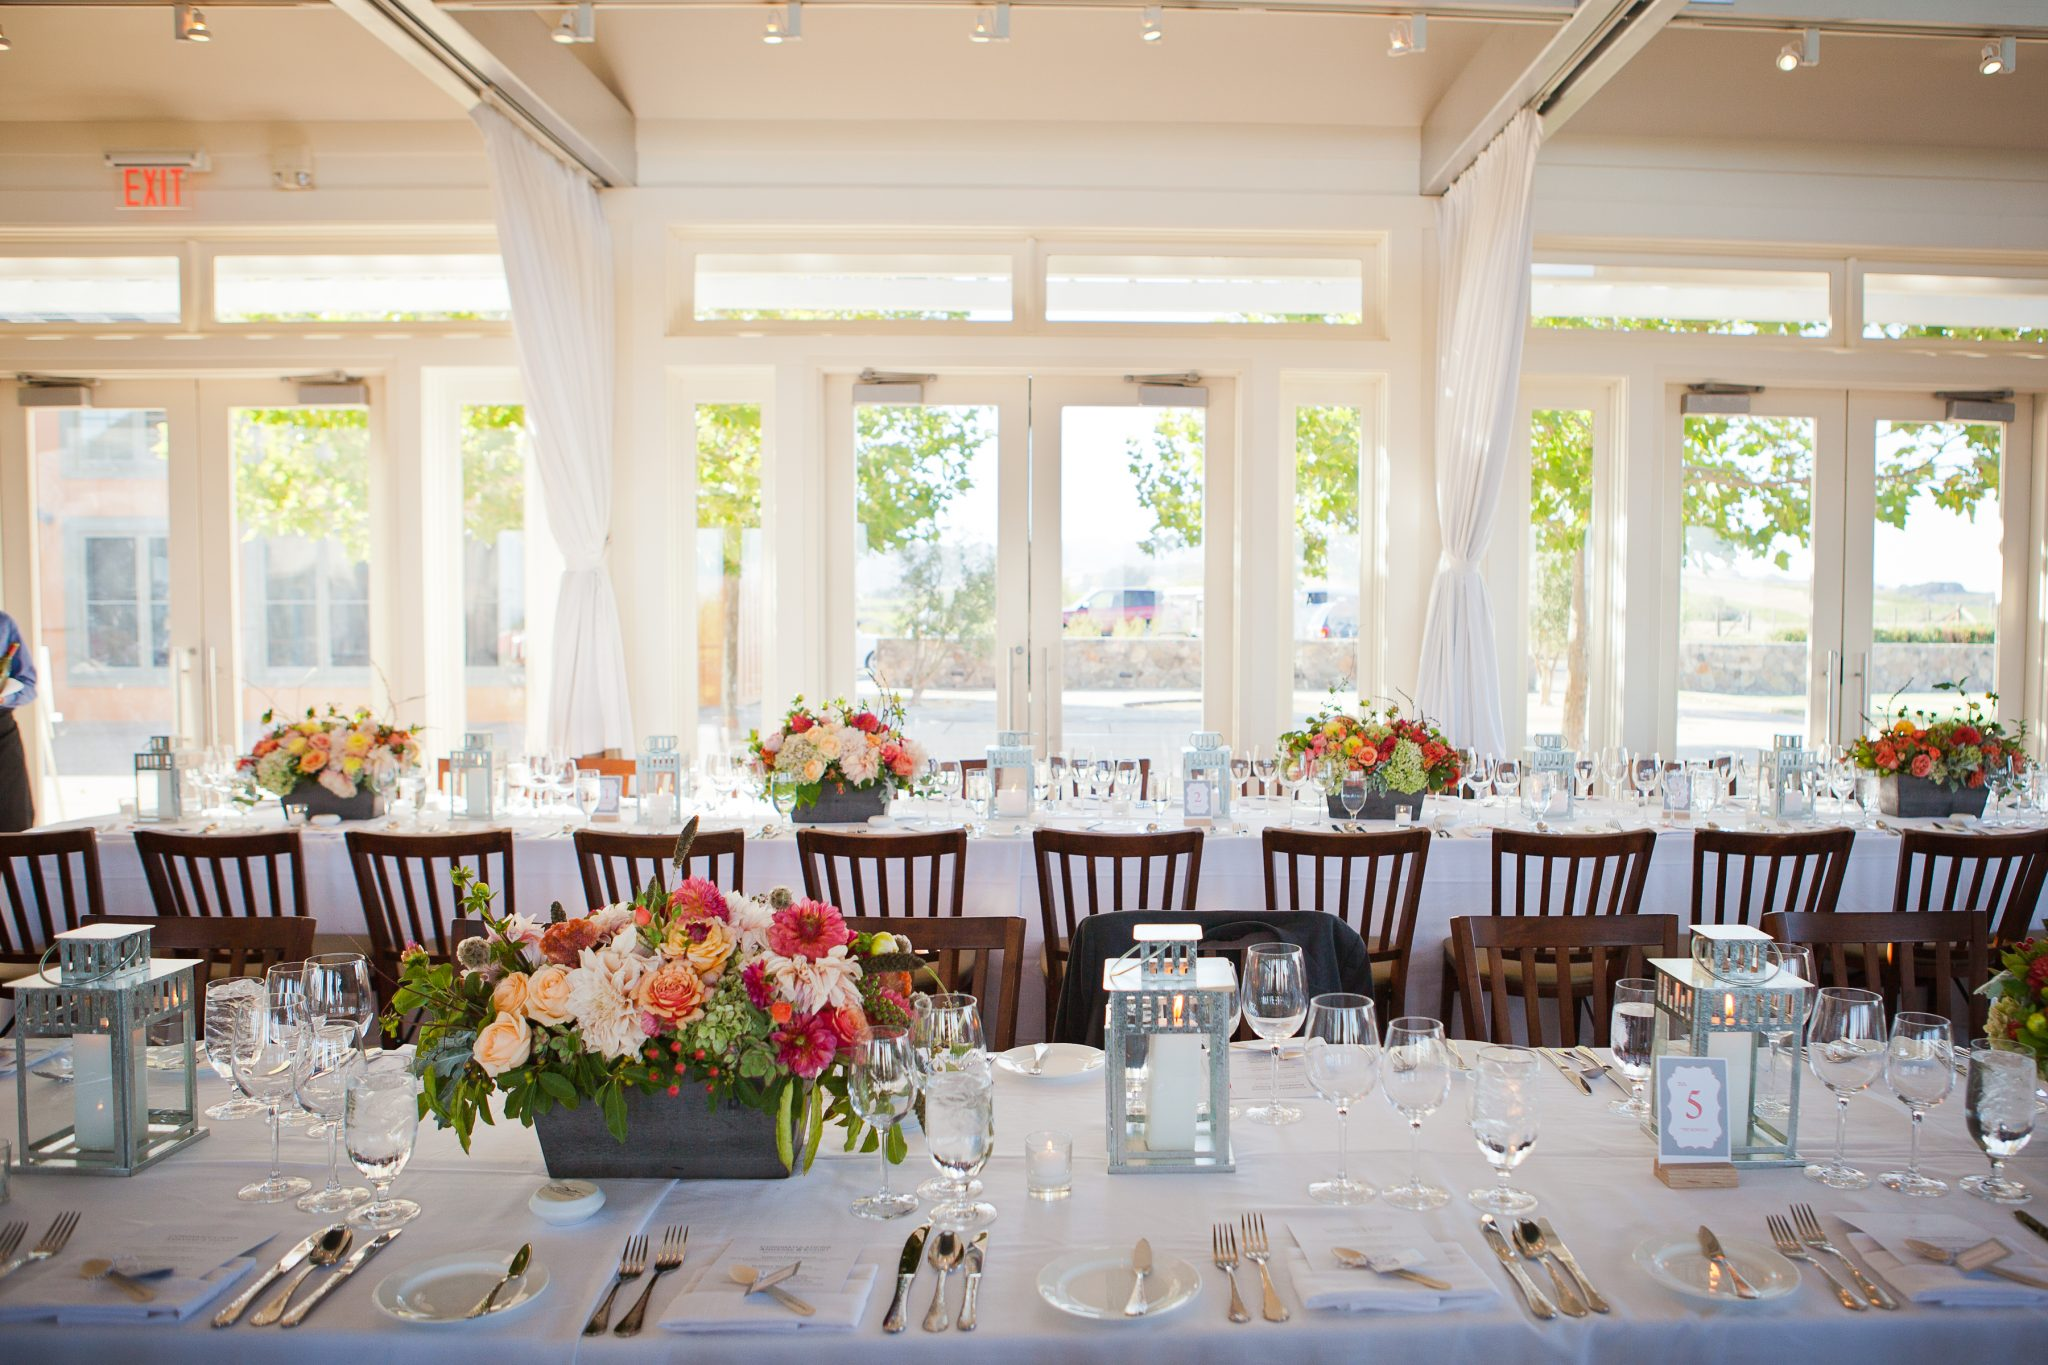 Carneros Supper Club at Carneros Resort and Spa